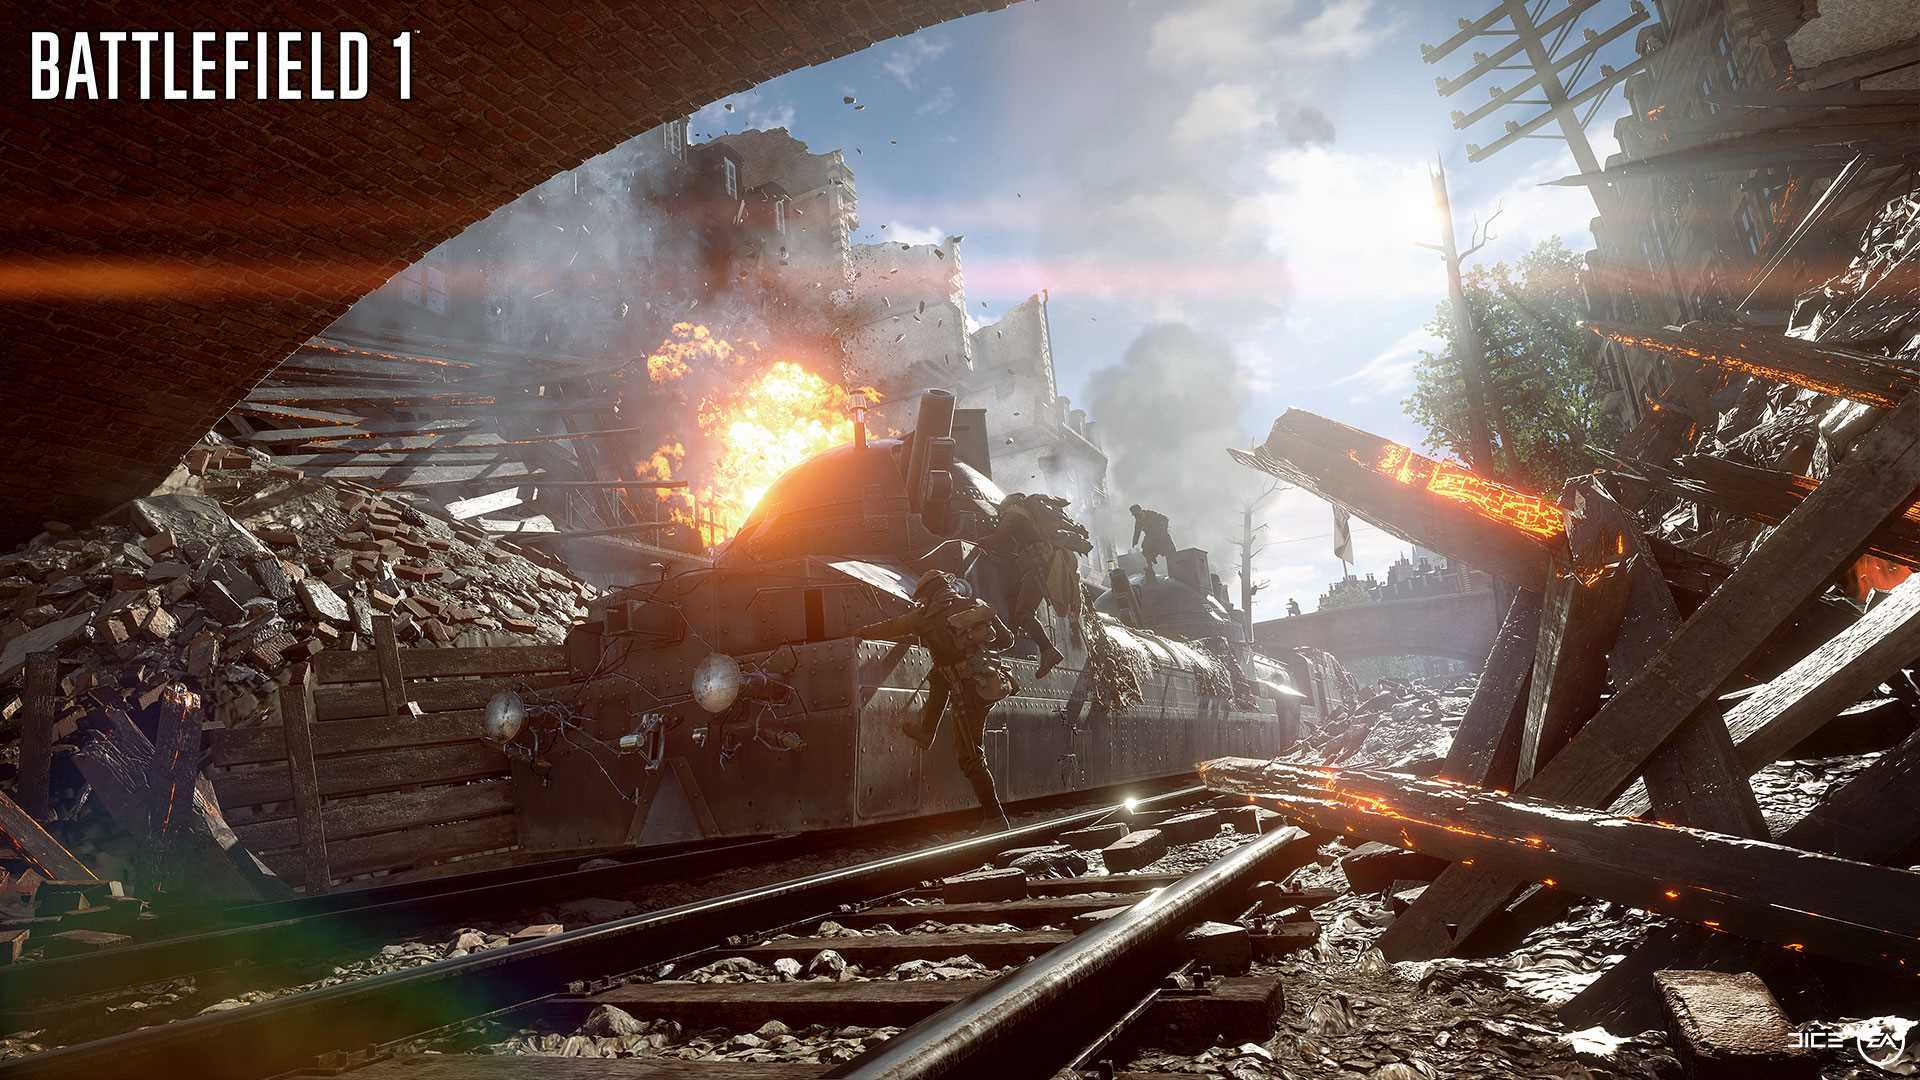 Preview: Battlefield 1's alpha is extremely promising